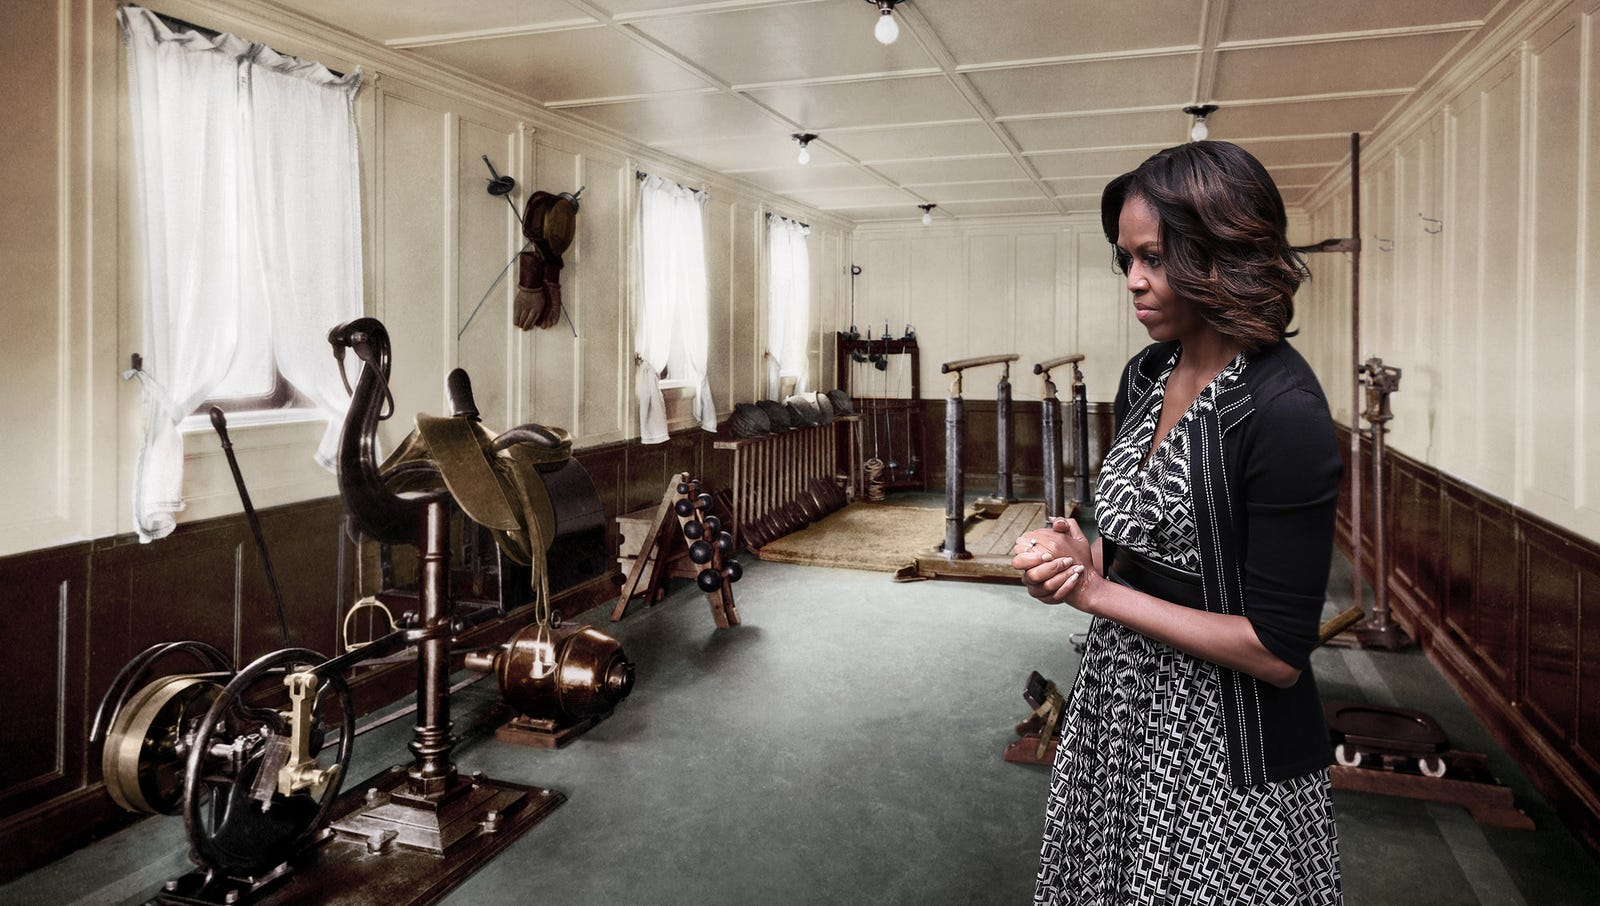 Michelle Obama Renovates Van Buren Workout Room